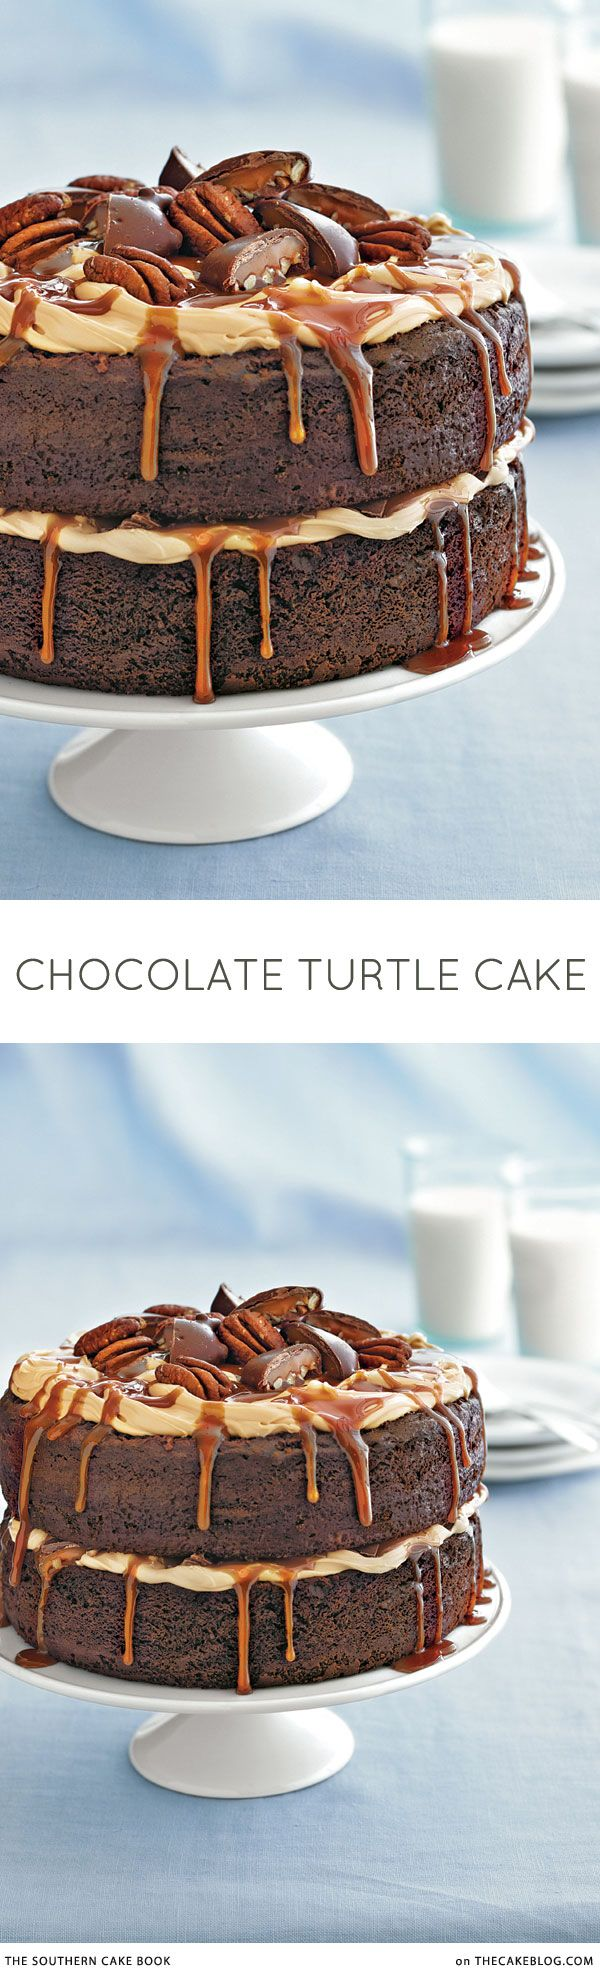 chocolate, caramel and pecans | Chocolate Turtle Cake Recipe | from The Southern Cake Book by Southern Living on TheCakeBlog.com